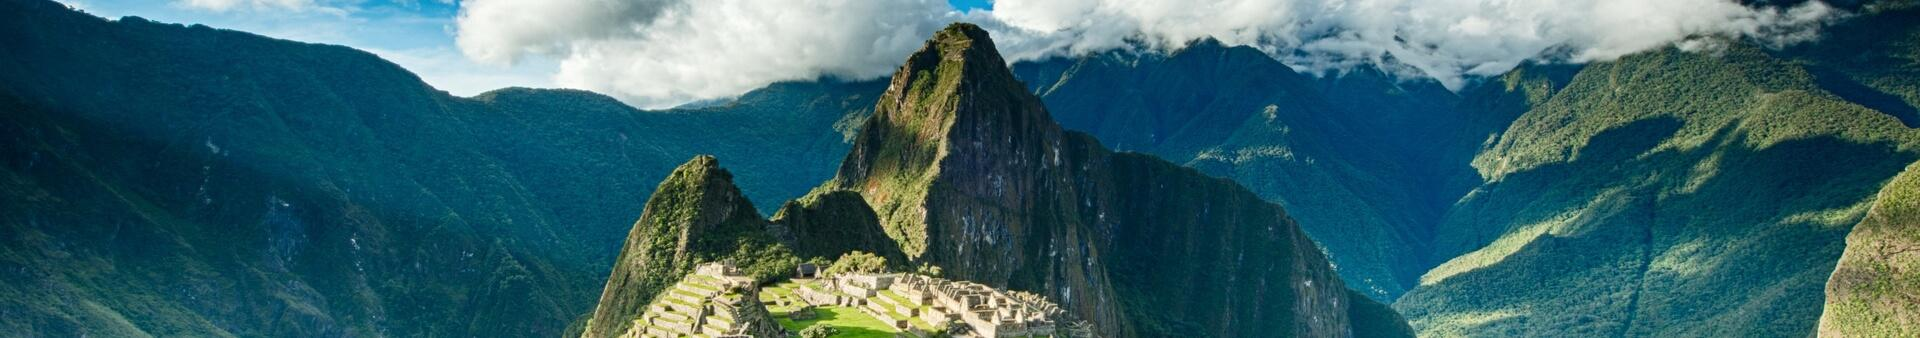 Machu Picchu Travel Header